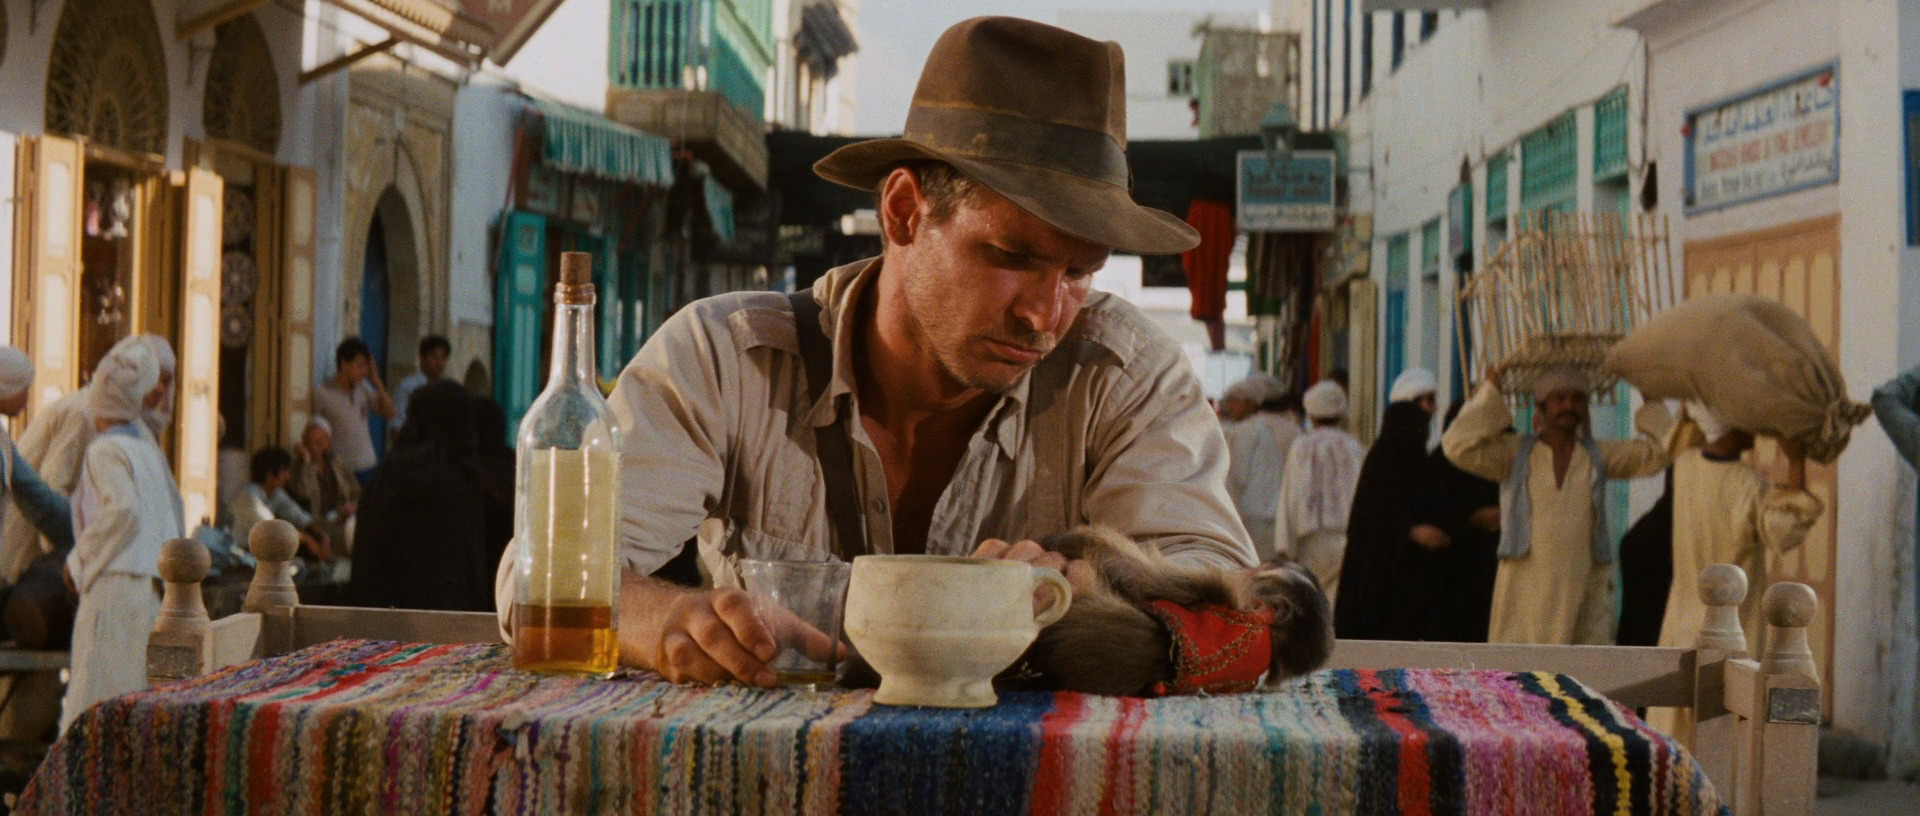 raiders-lost-ark-movie-screencaps.com-5043.jpg